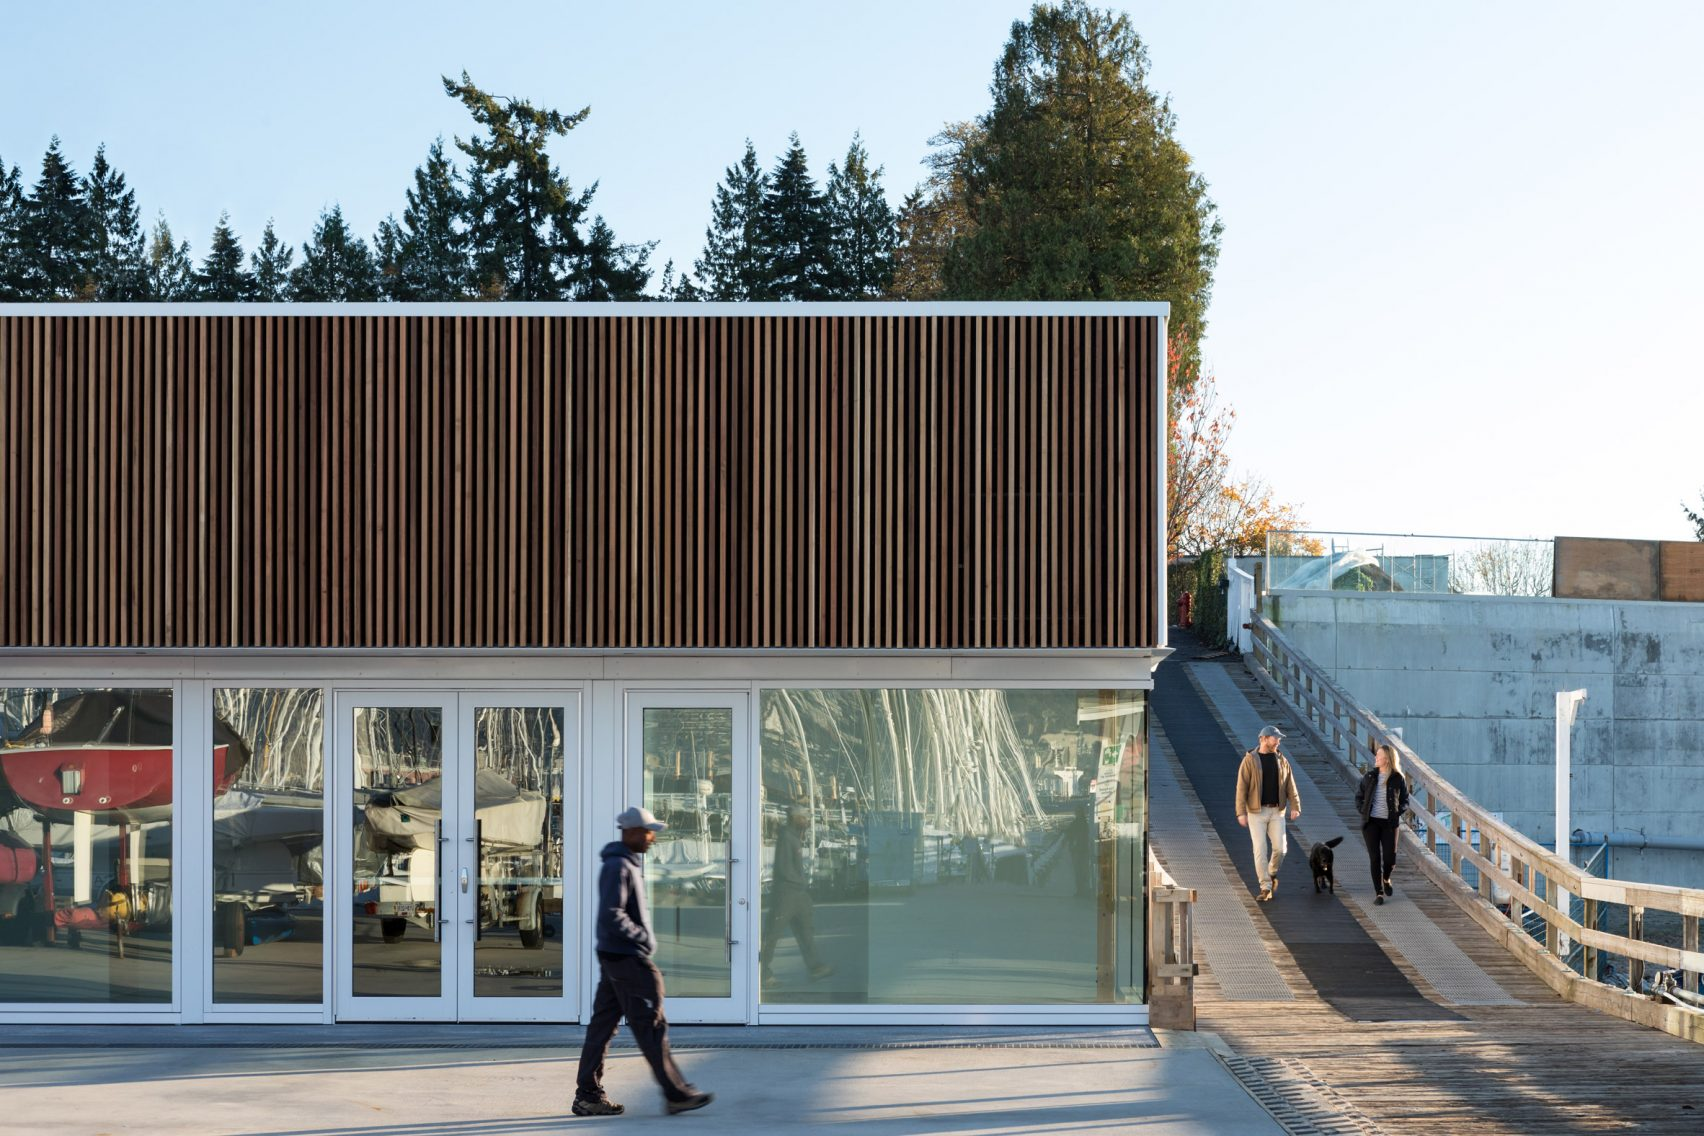 the-dock-building-michael-green-architecture-vancouver-canada_dezeen_2364_col_6-1704x1136.jpg